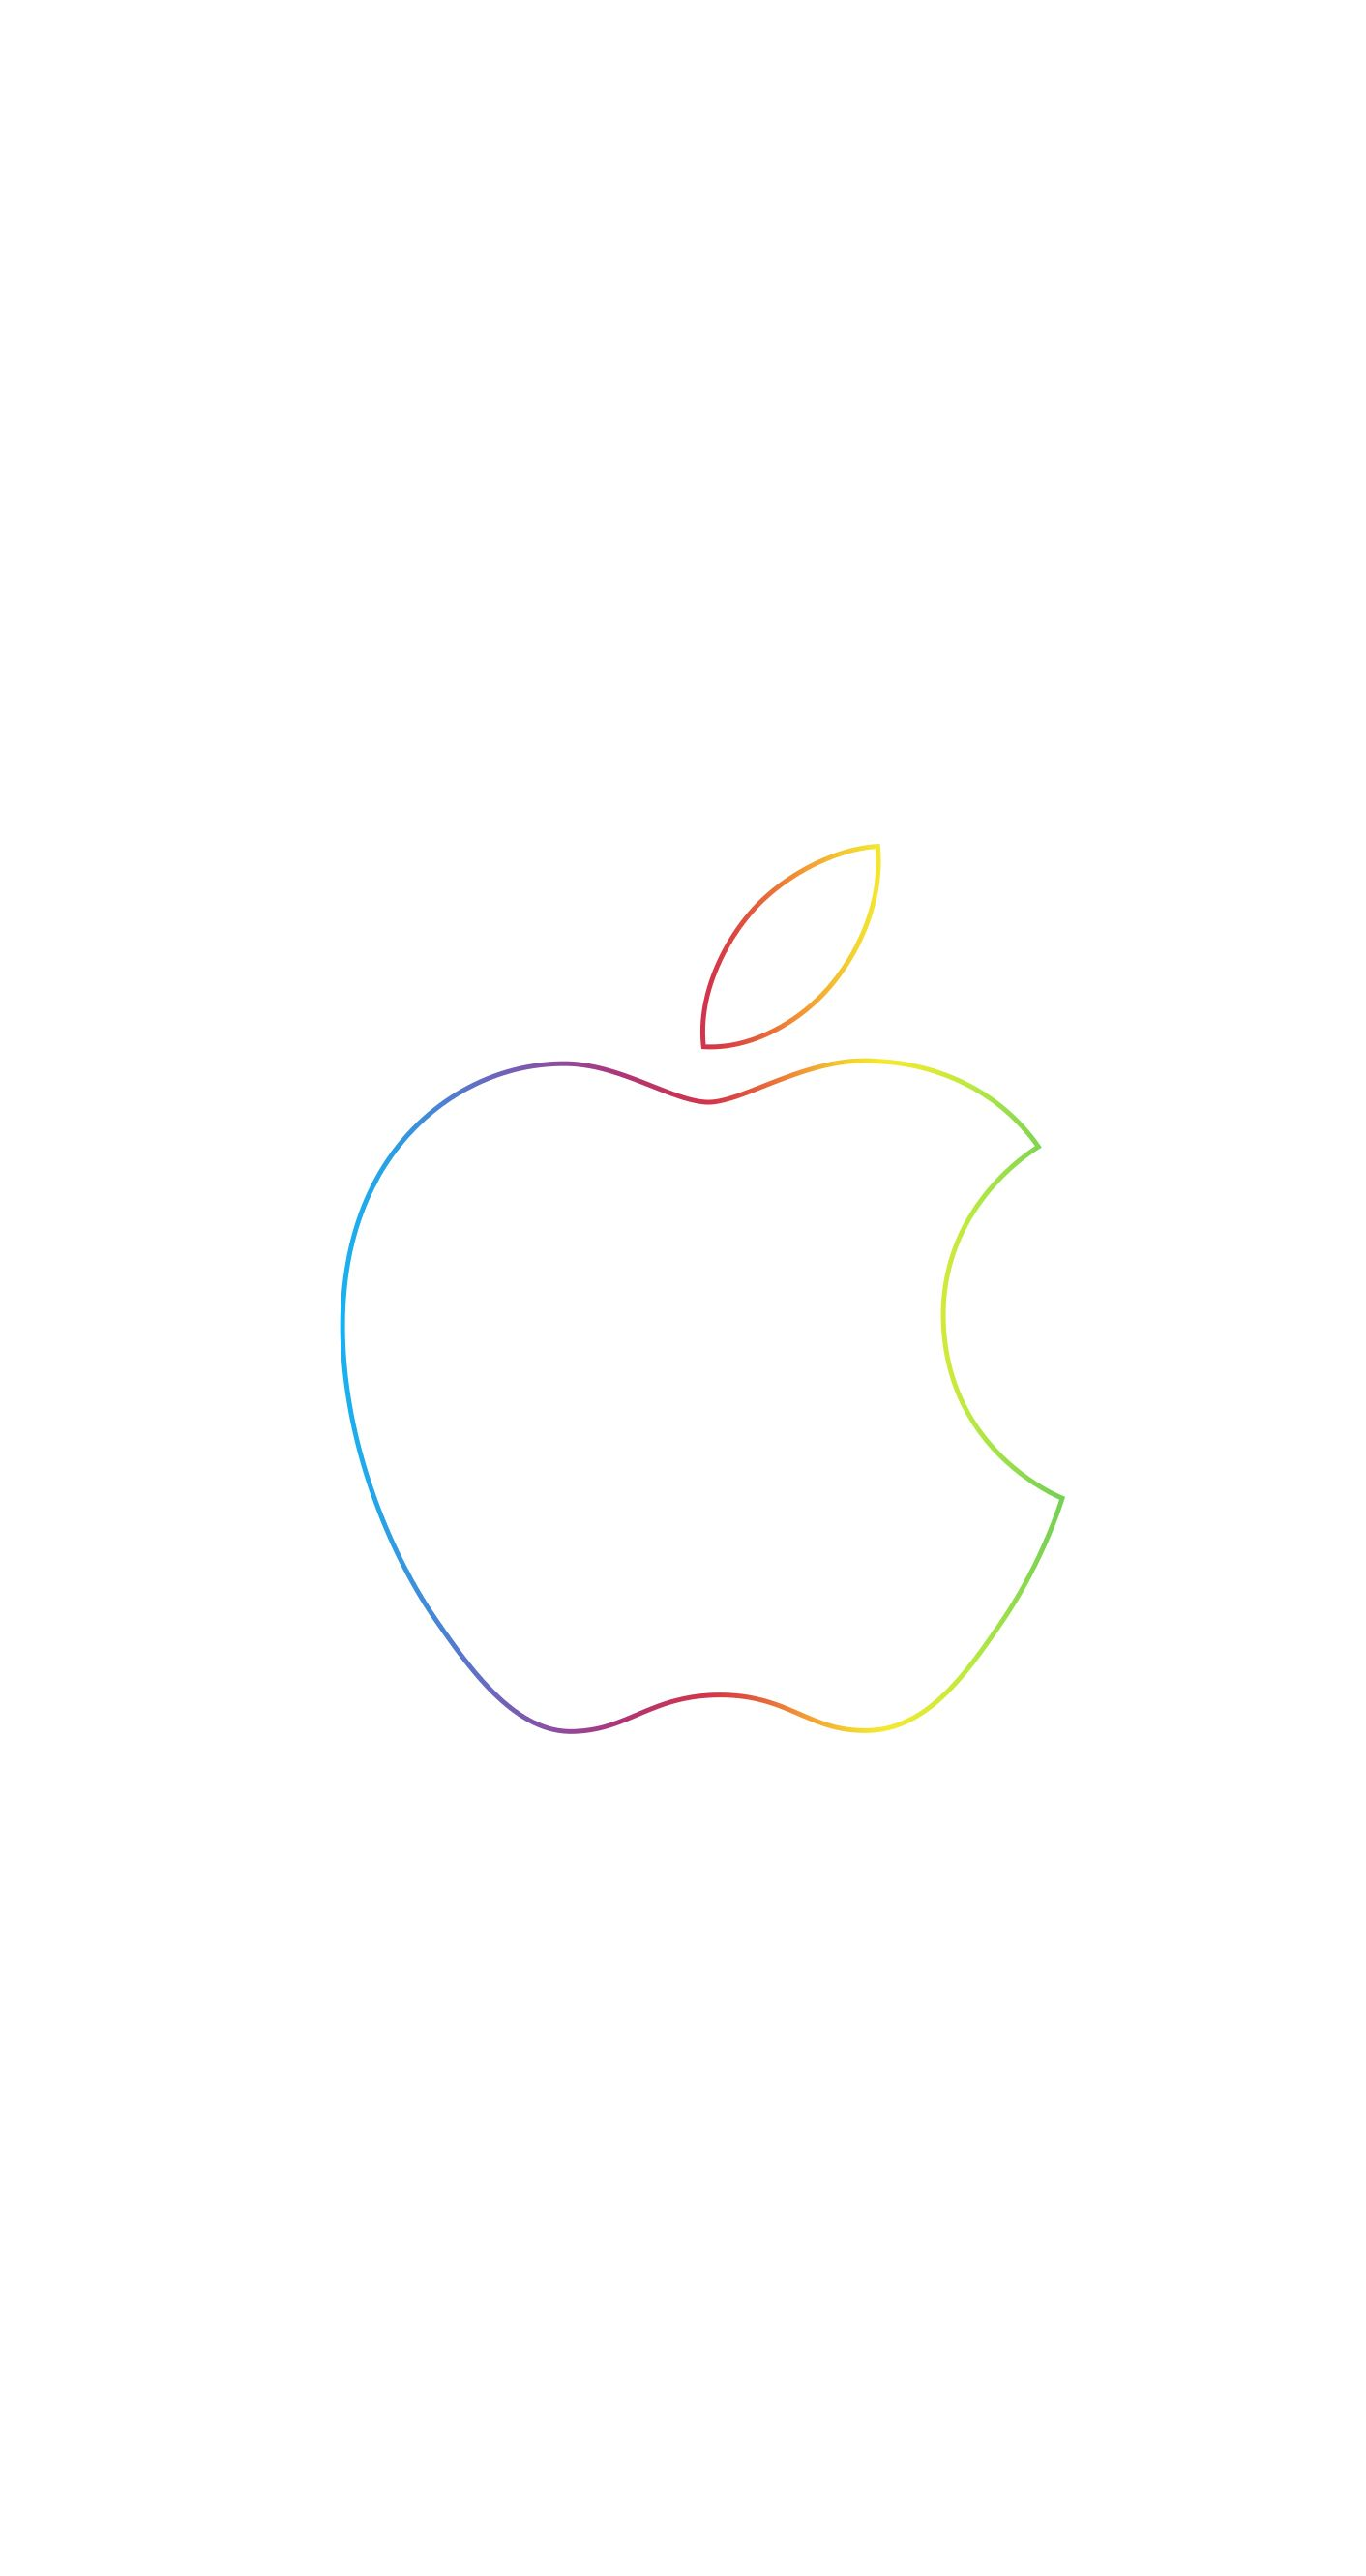 Apple Logo Find More Minimalistic Iphone Android Wallpapers And Backgrounds At Pre Apple Wallpaper Apple Logo Wallpaper Iphone Apple Wallpaper Iphone